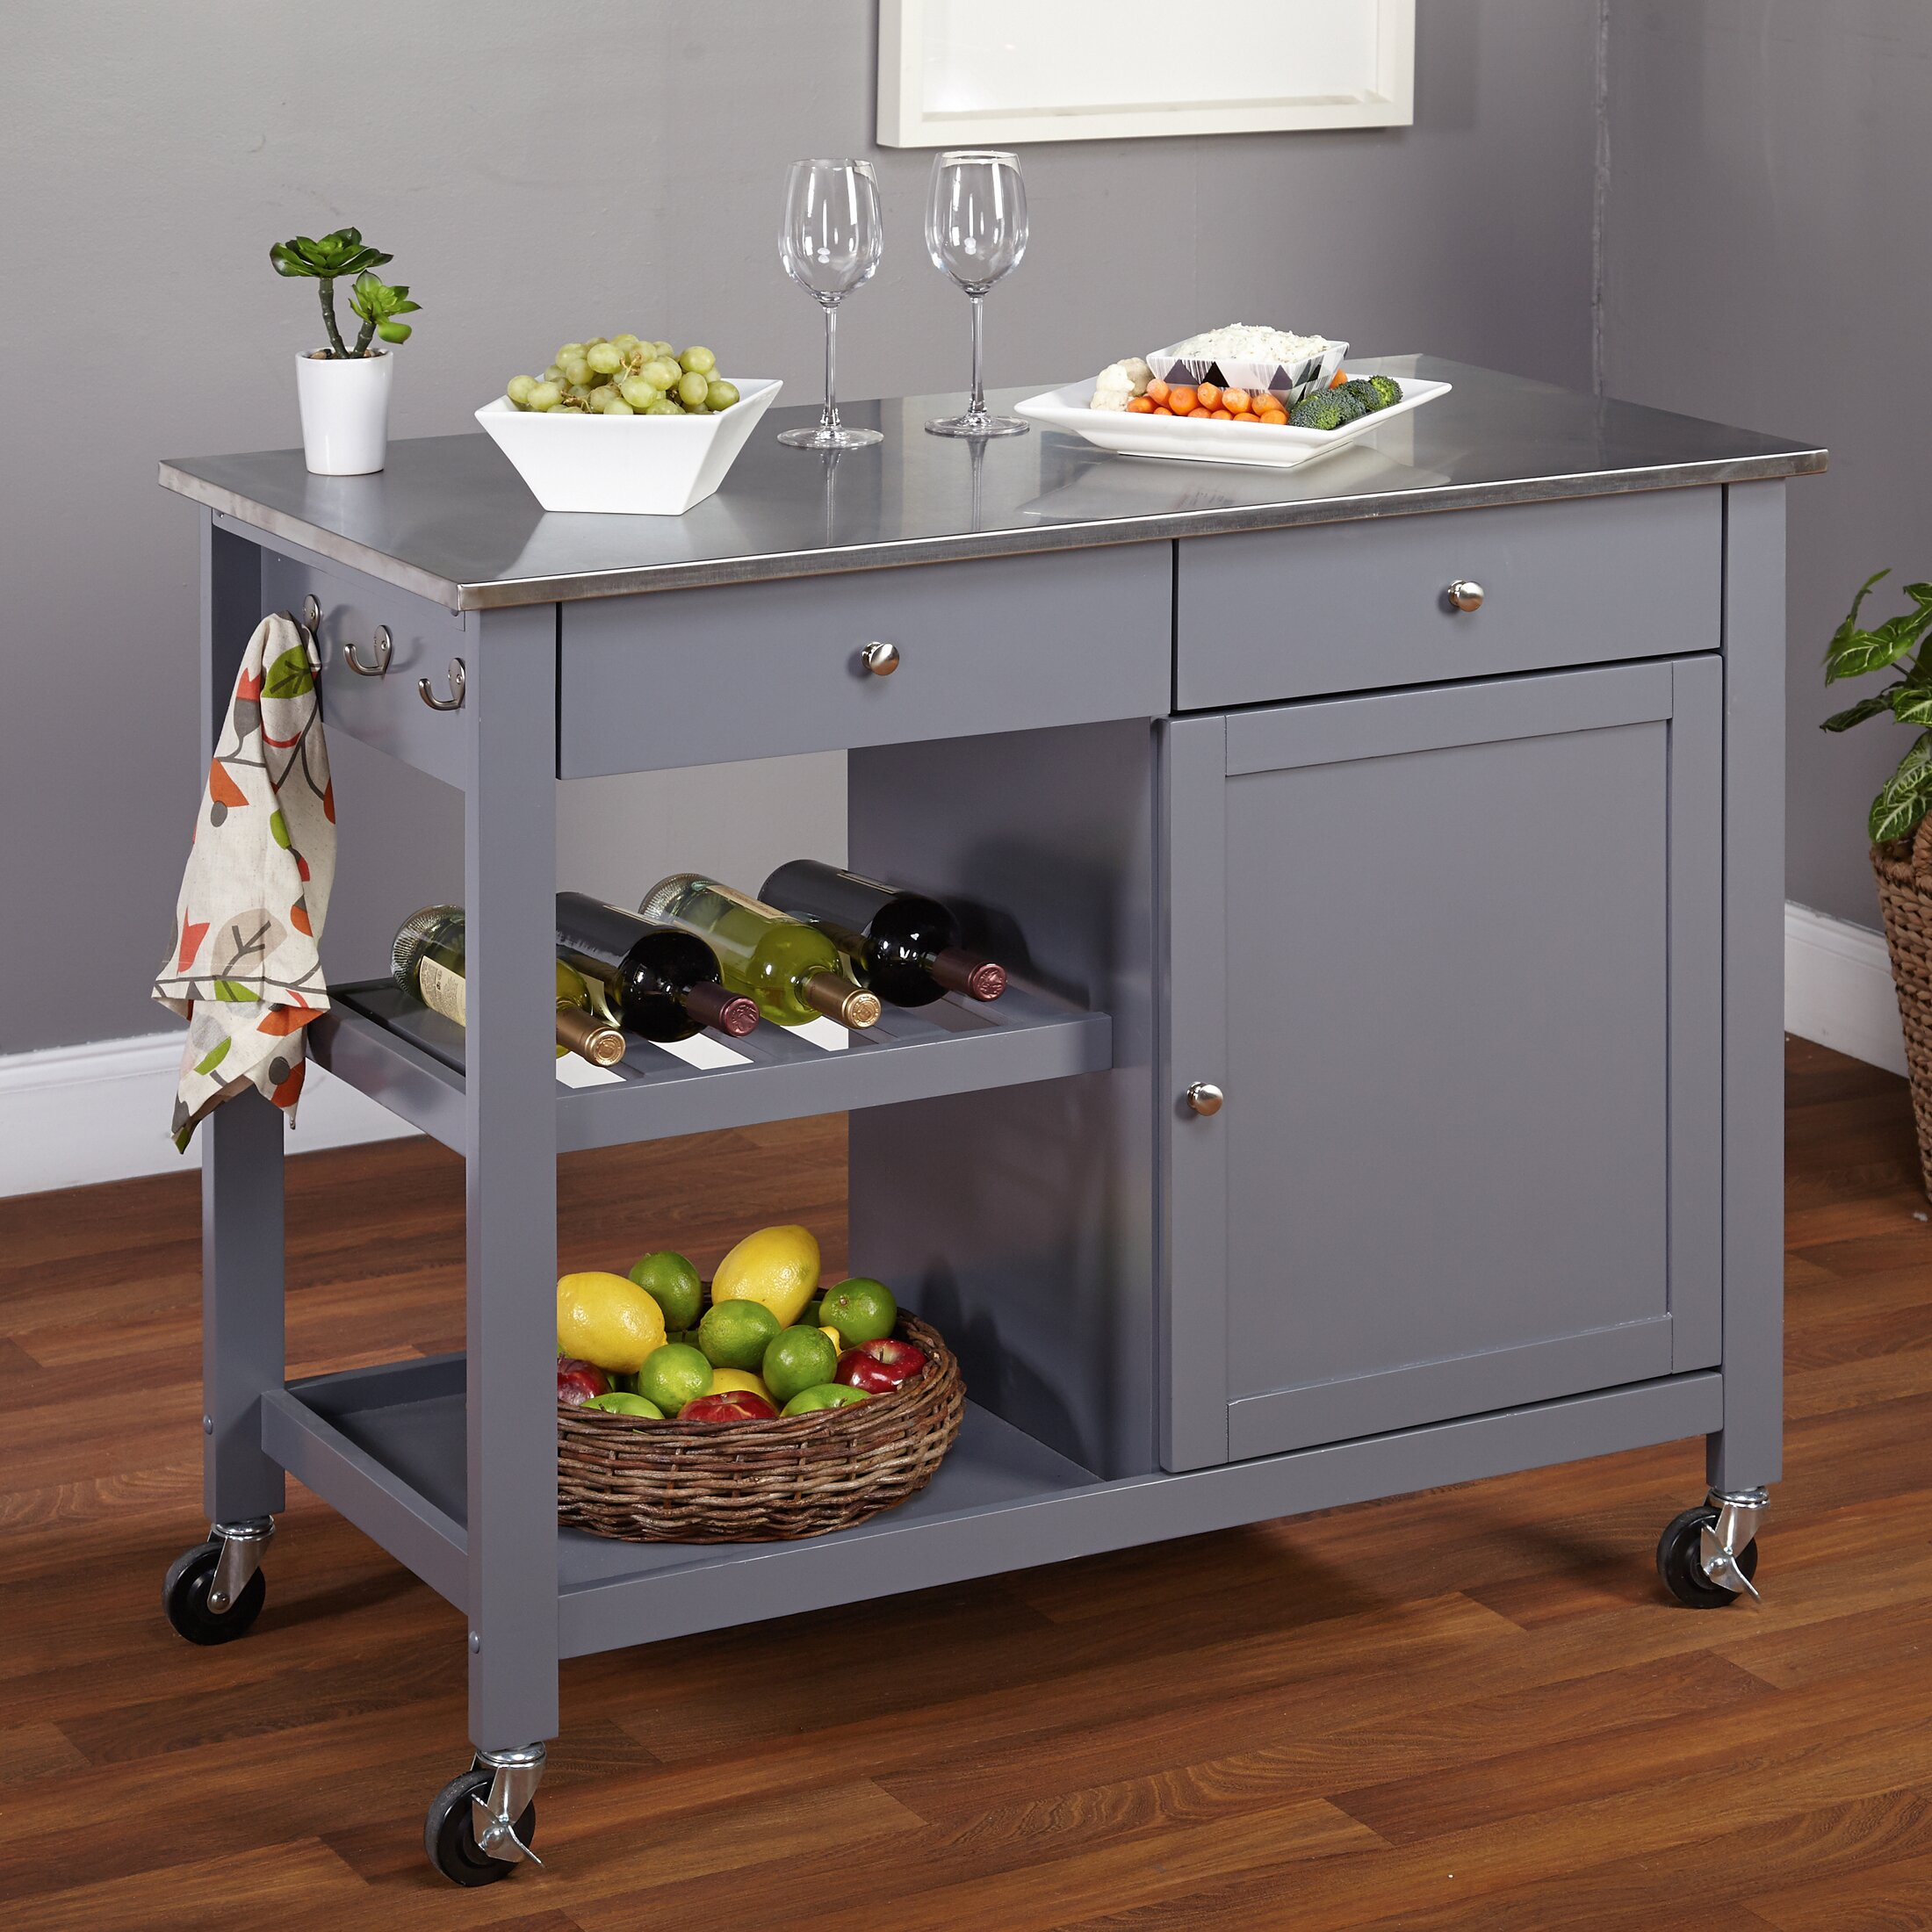 Stainless Steel Kitchen Tms Columbus Kitchen Island With Stainless Steel Top Reviews